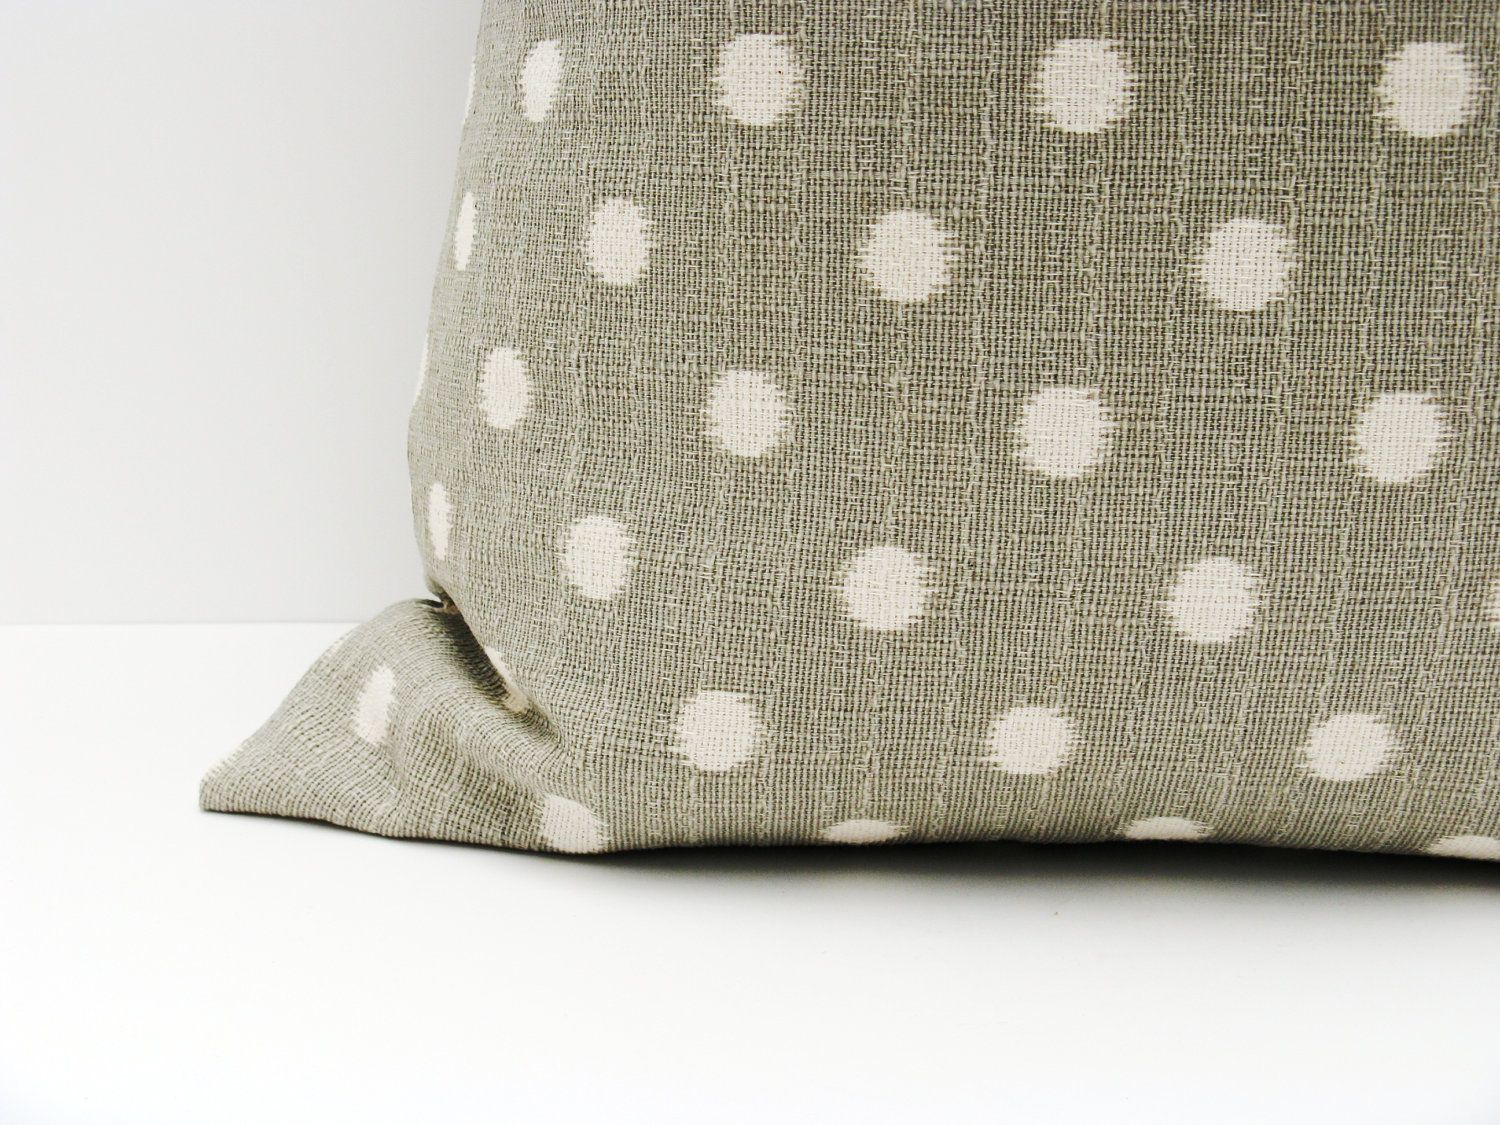 Gray Pillow Sets. 18x18 inch. Ikat pillow cover. Set of TWO . Decorative pillow covers. printed fabric on front and back. $36.00, via Etsy.